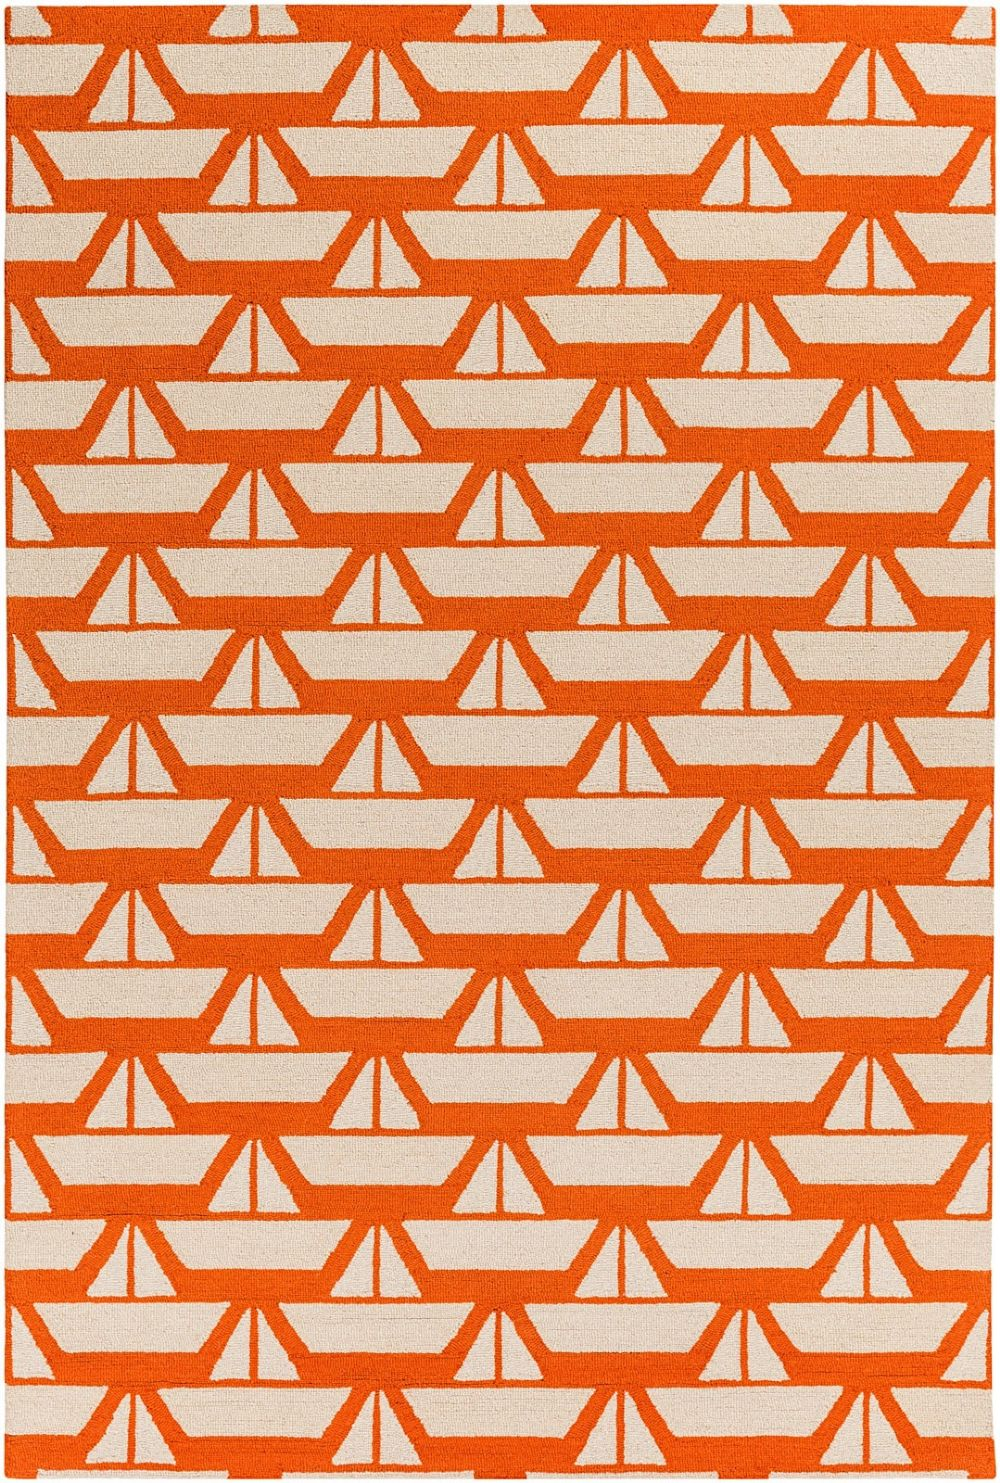 surya tic tac toe contemporary area rug collection